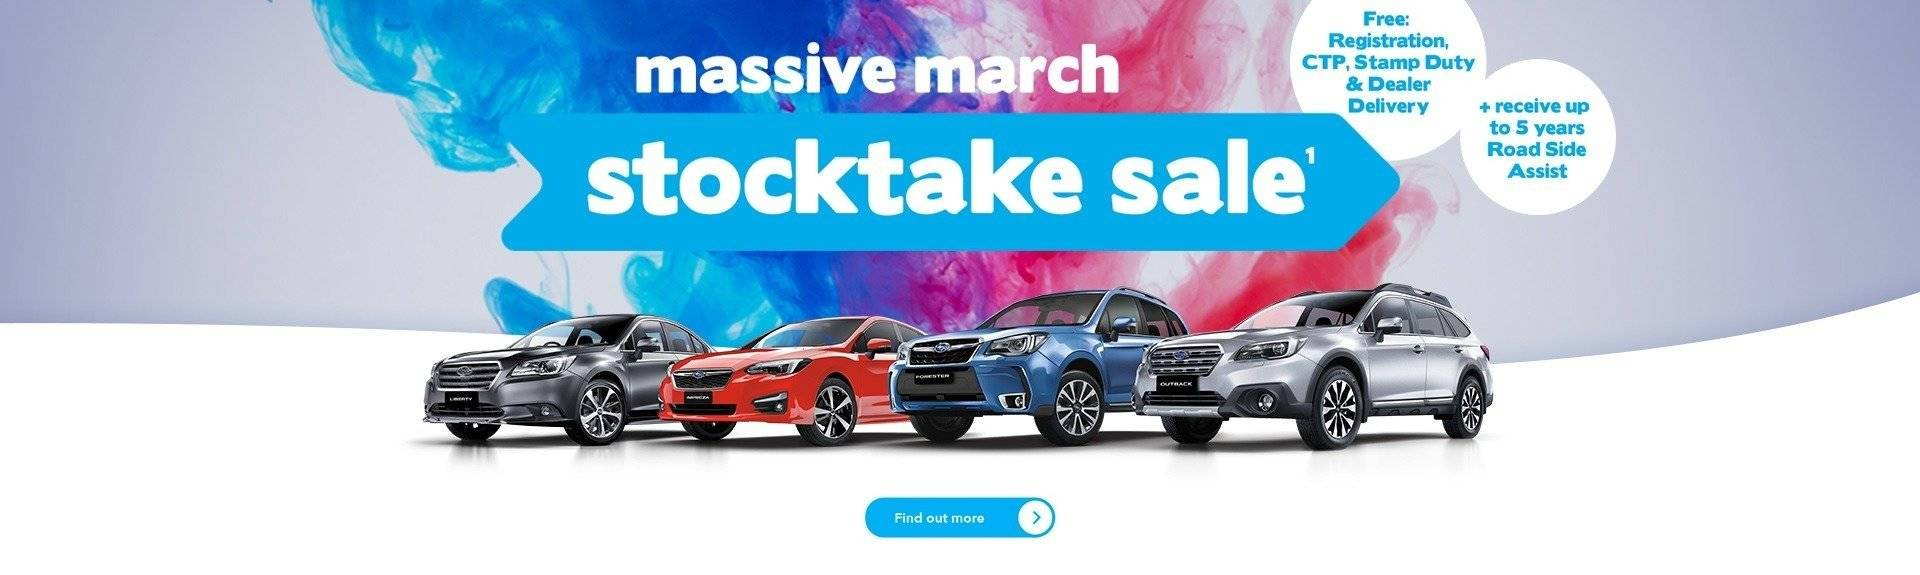 https://www.trivett.com.au/offers/subaru/march-stocktake-sale?state=nsw